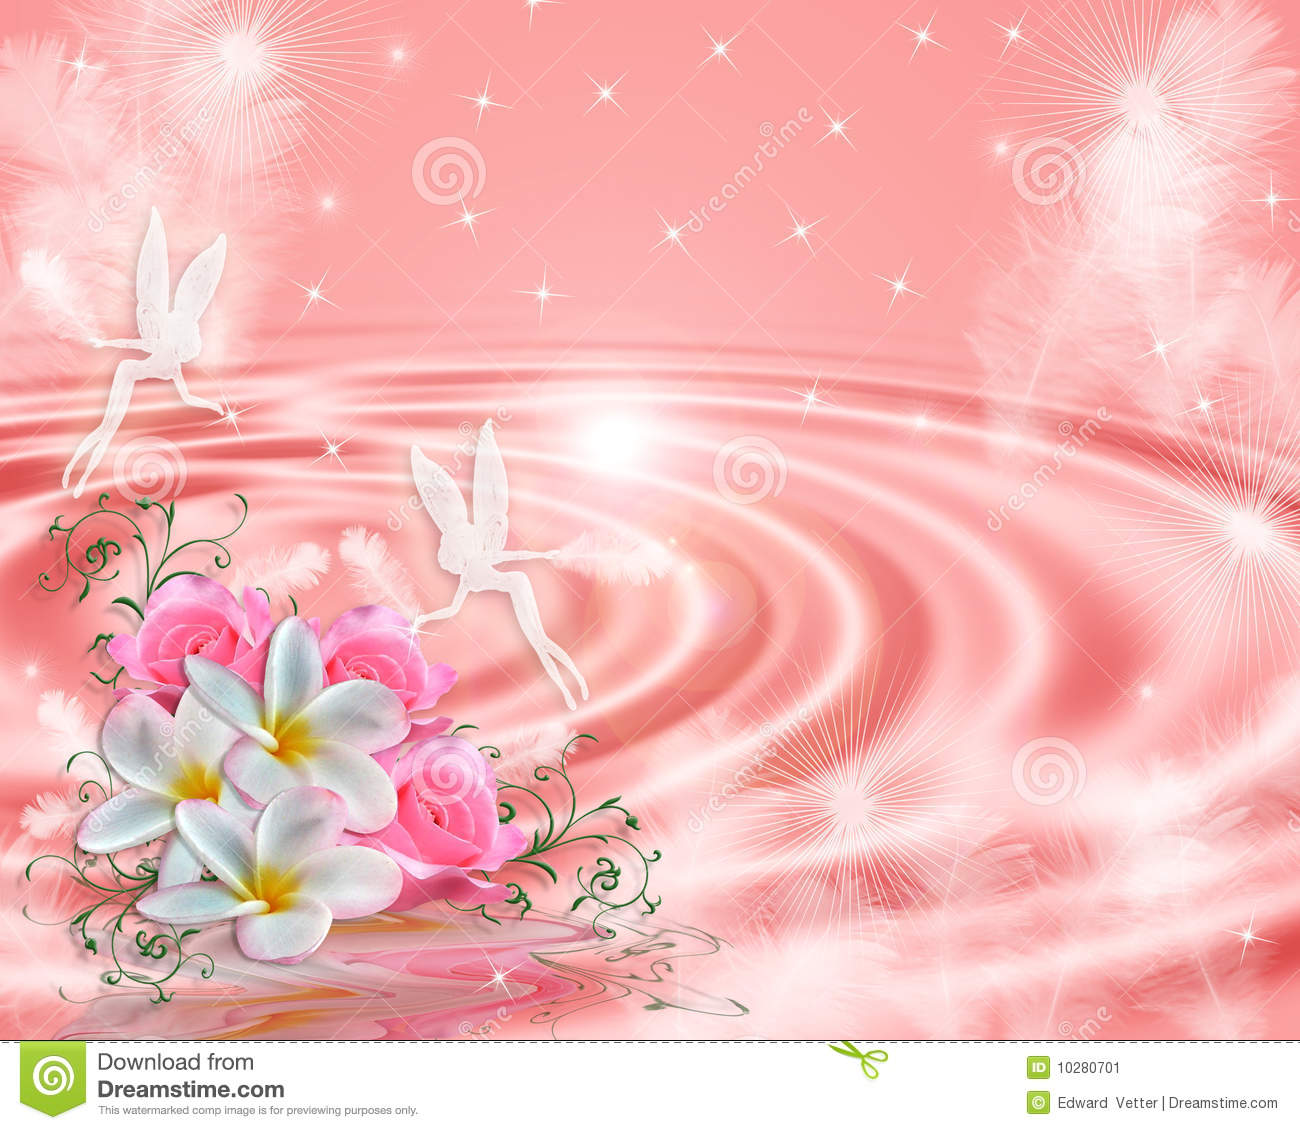 Image and illustration composition floral design with tiny fairies for